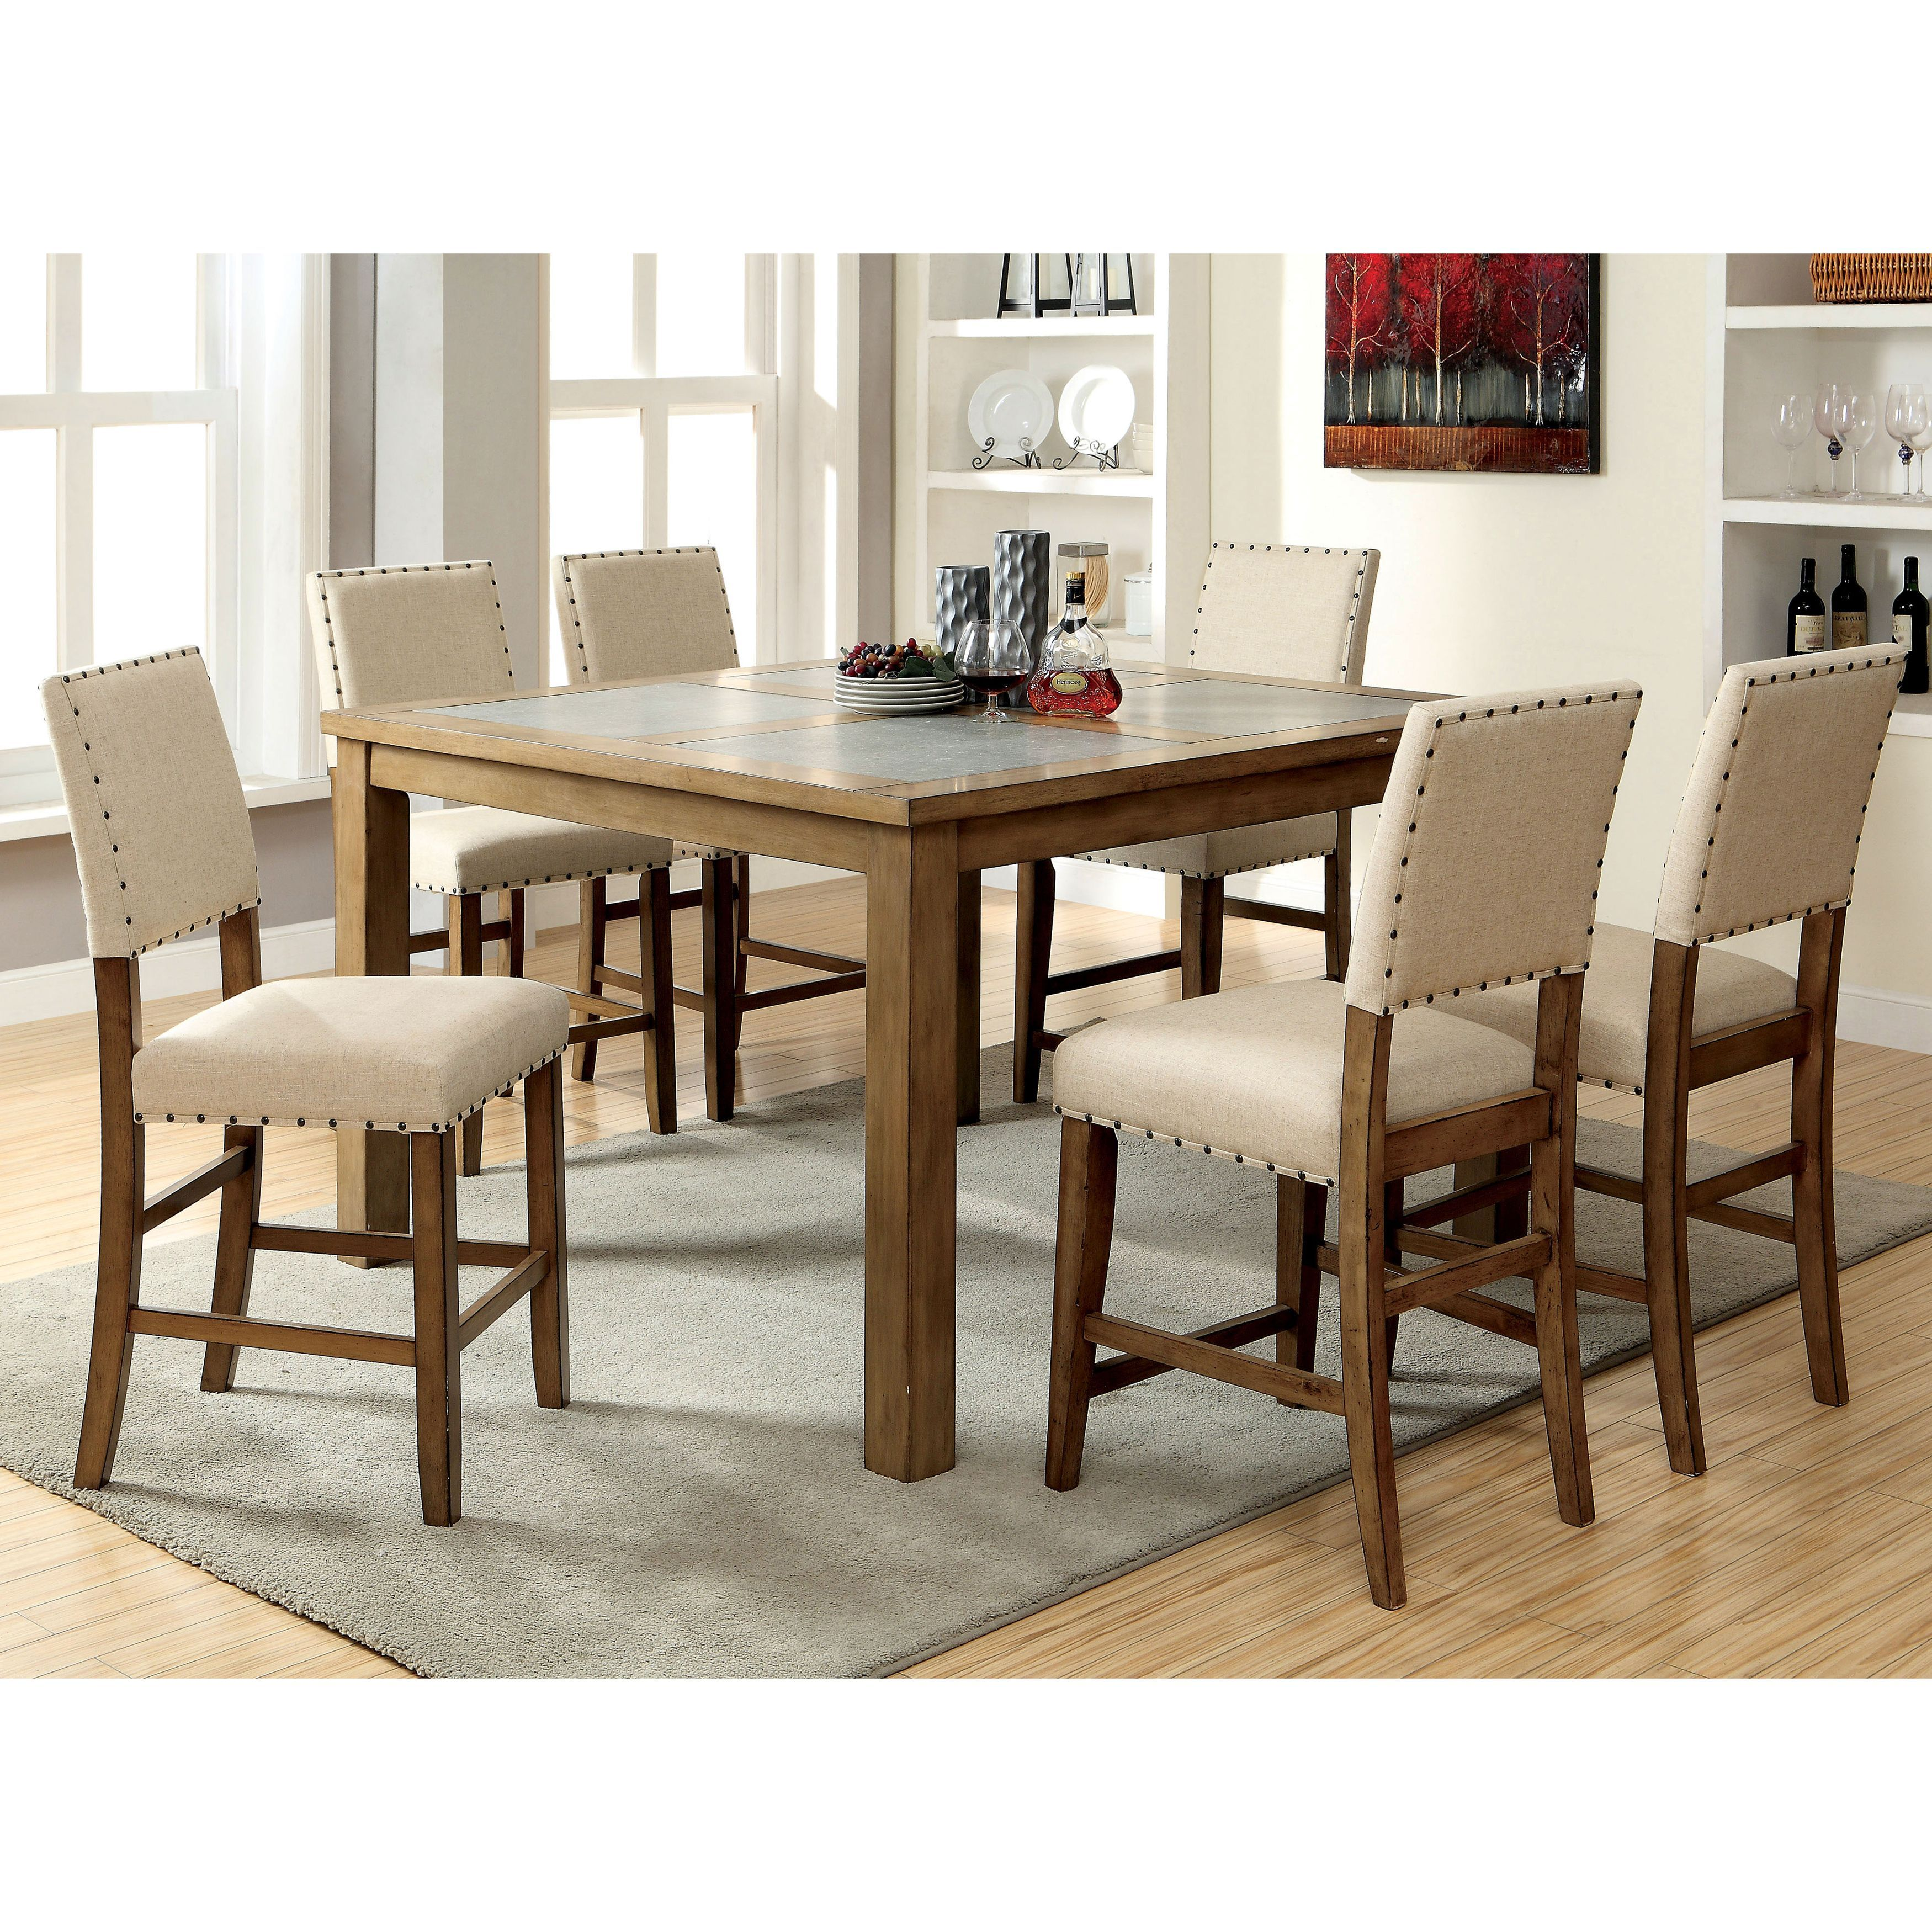 Enhance The Modern Style Of Your Home With This Exquisite Counter Height 7 Piece  Dining. Counter Height Dining SetsPub ...